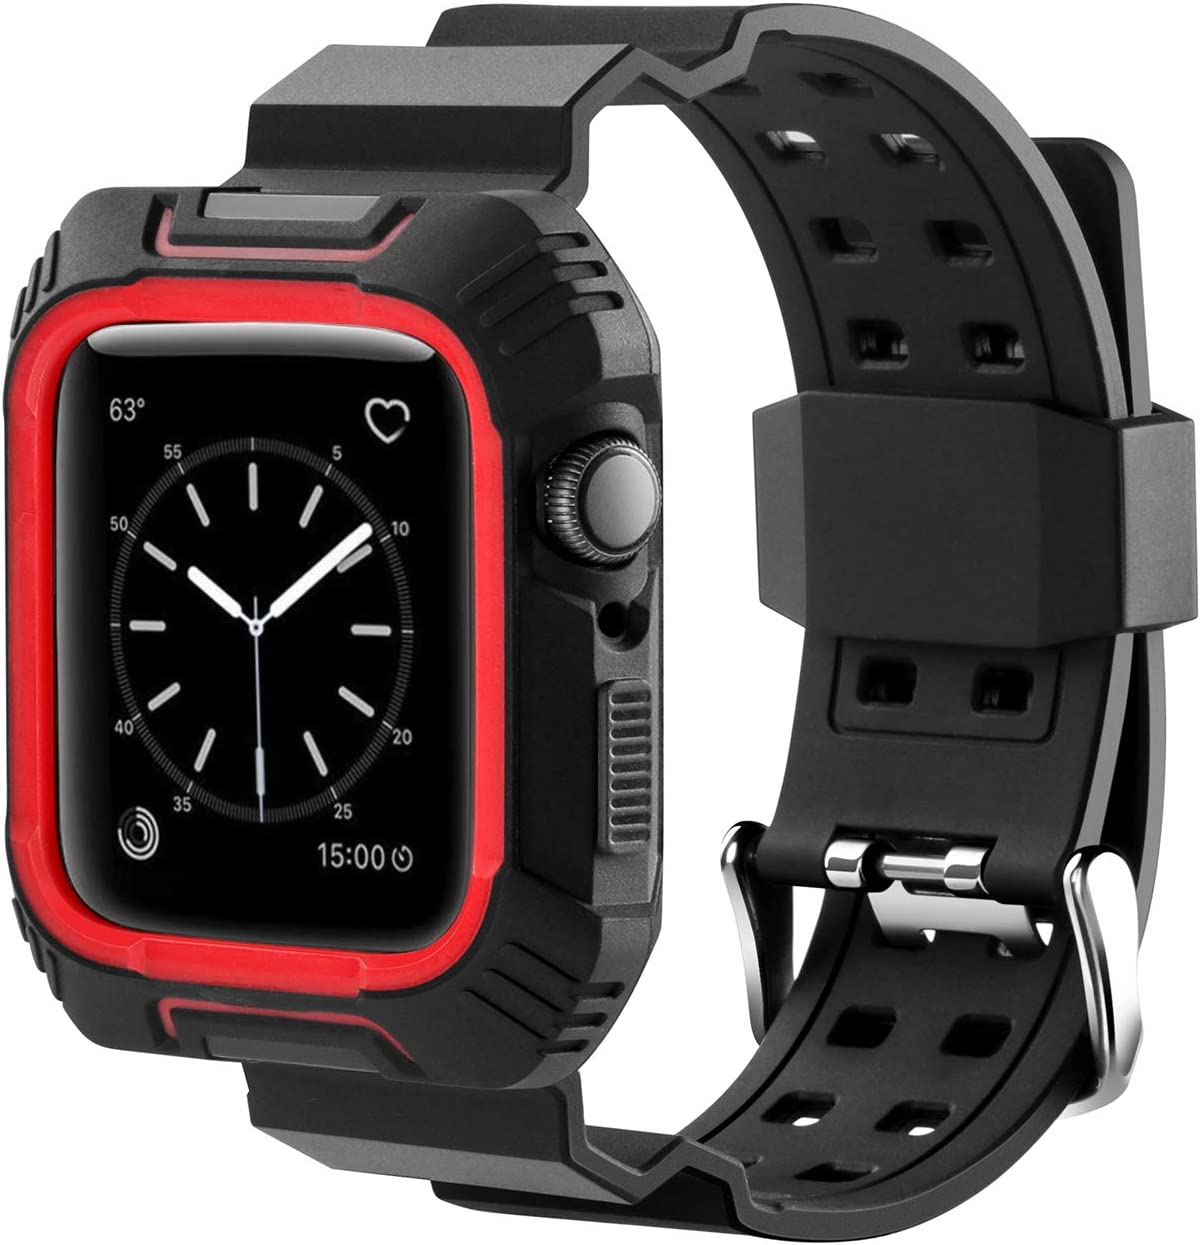 MAIRUI Compatible with Apple Watch Band Case 42mm Wristband Strap Rugged Protective Replacement for Apple Watch Series 3/2/1, iWatch Sport/Edition (Black&Red)